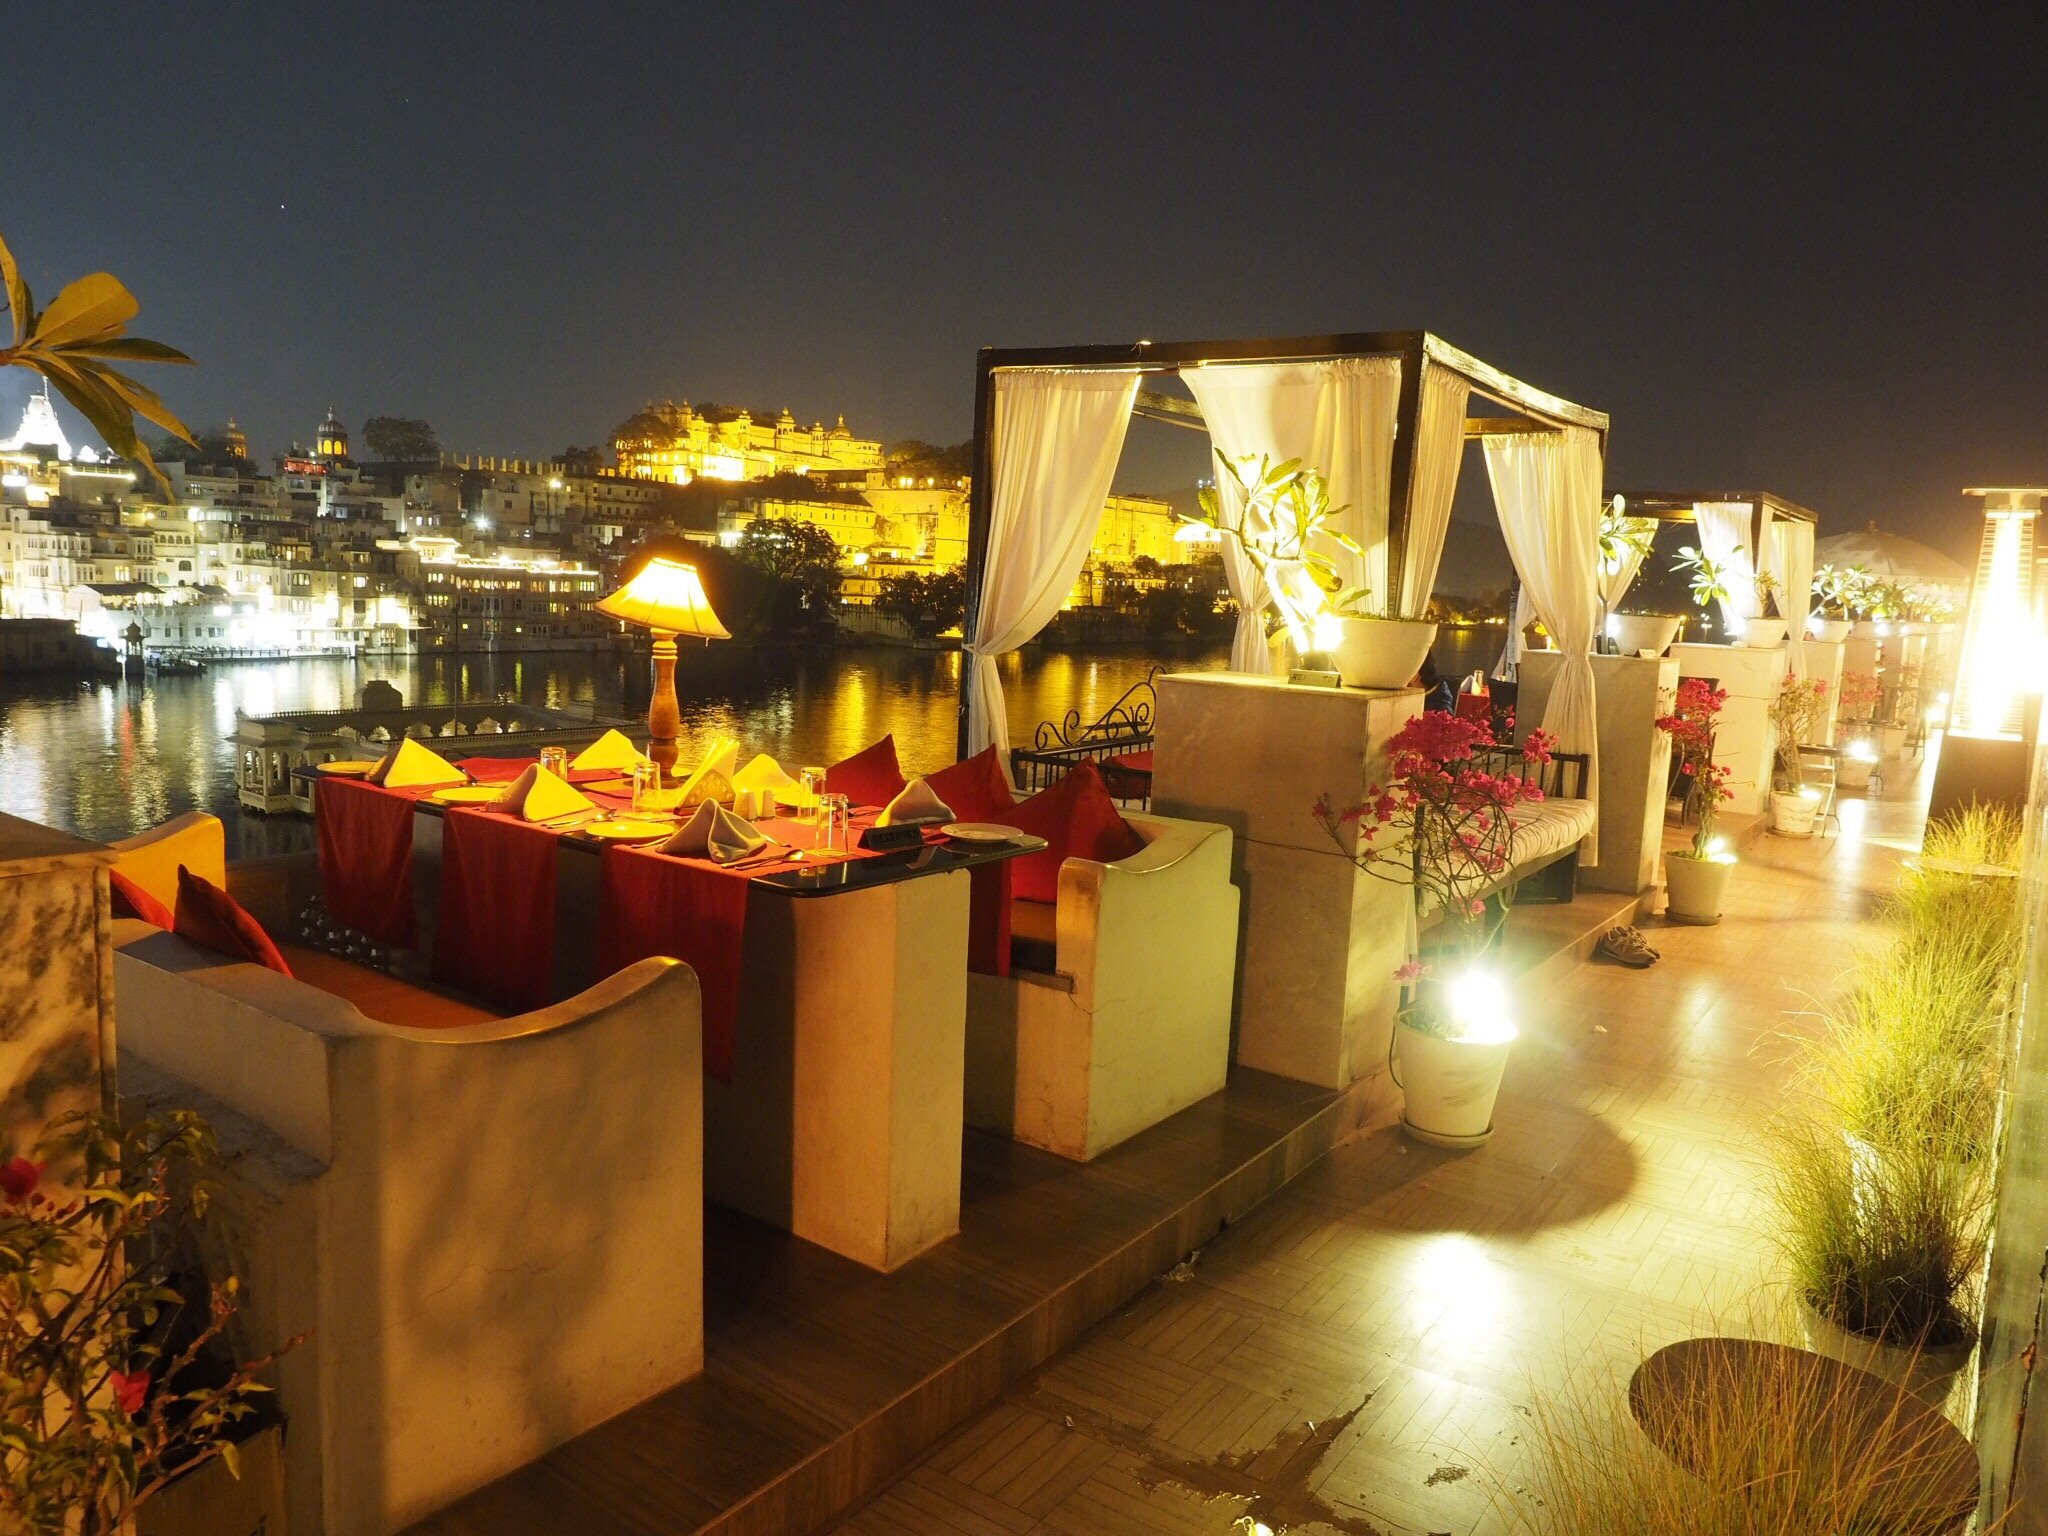 Upre Restaurant of Udaipur